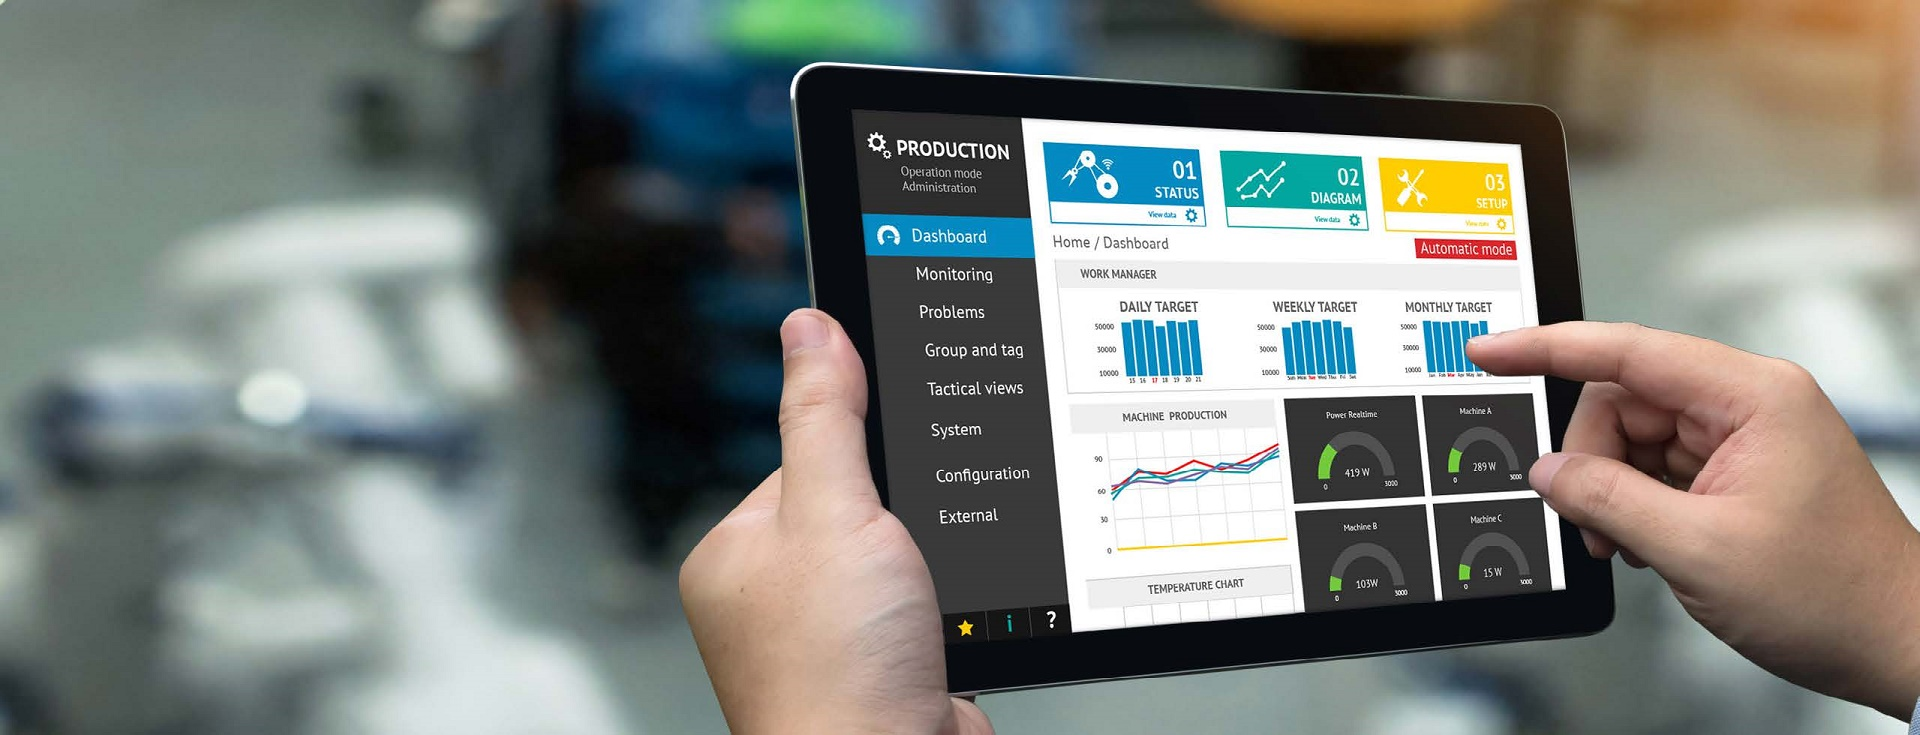 A person's hands holding a tablet that shows a production dashboard with reports